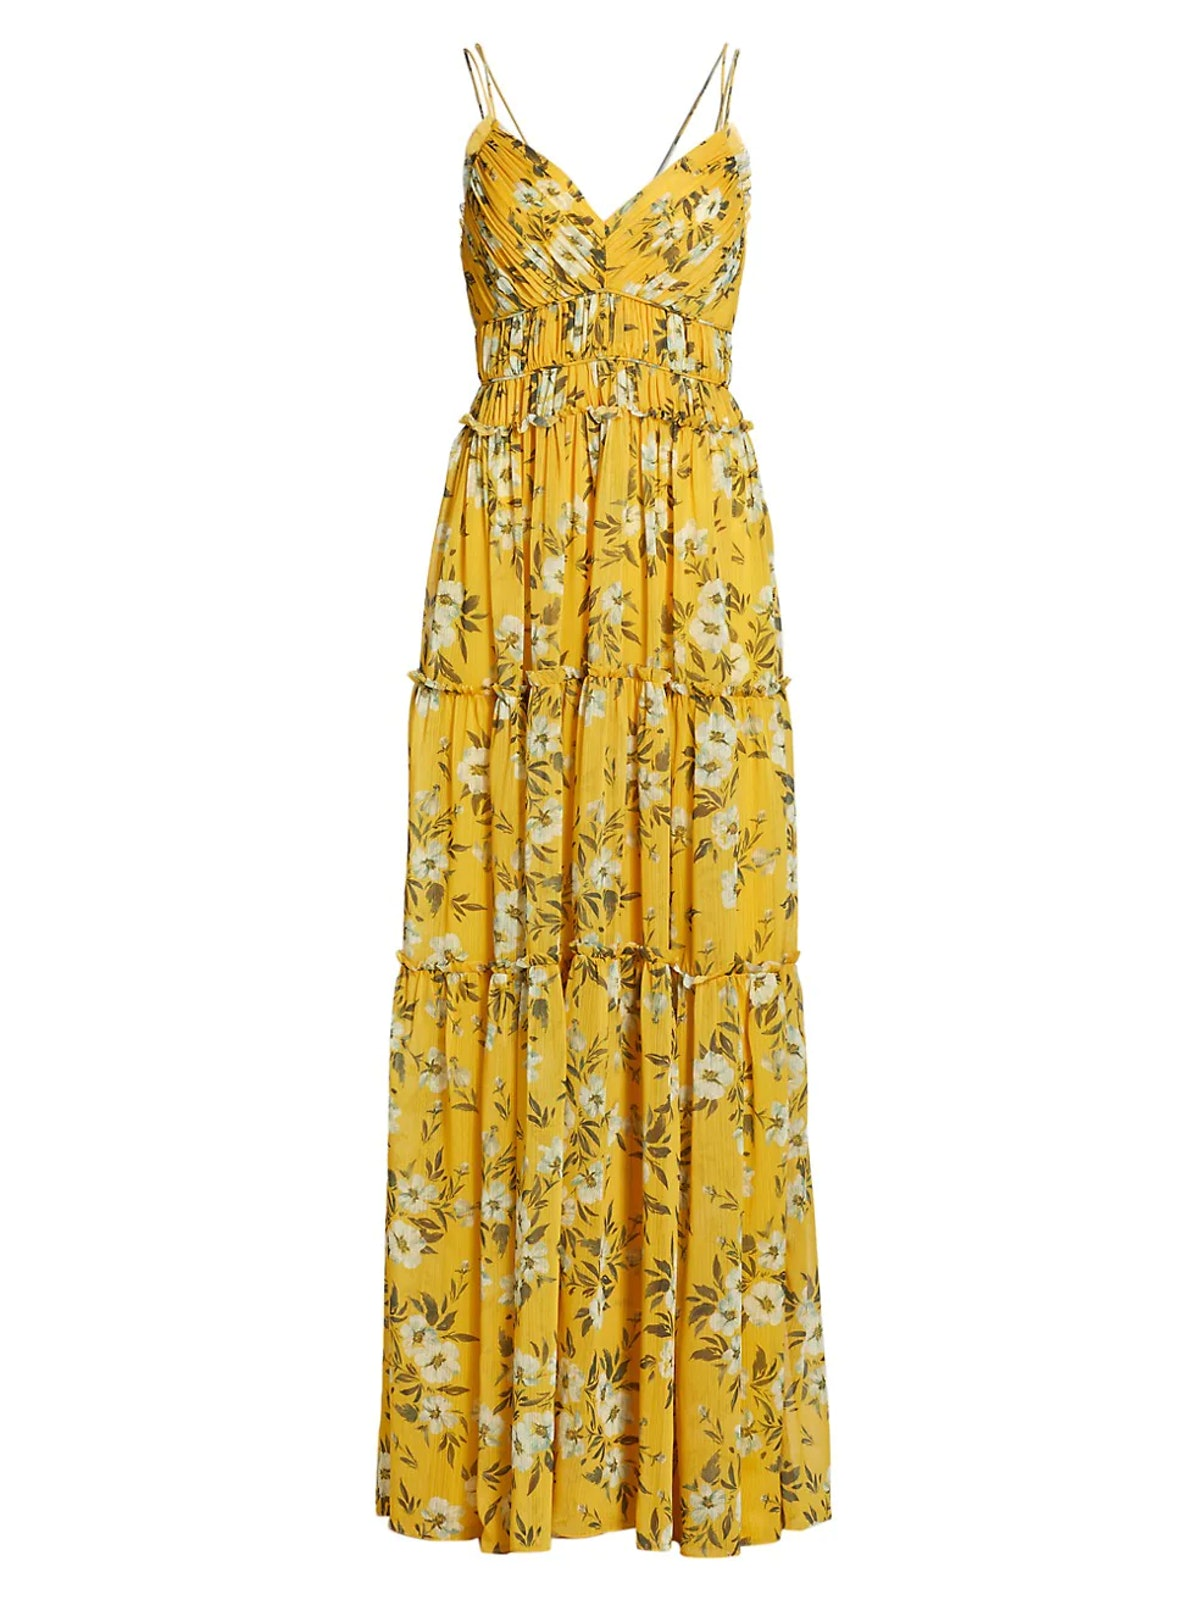 Pleated Chiffon Maxi Dress from ML Monique Lhuillier, available to shop on Saks Fifth Avenue.